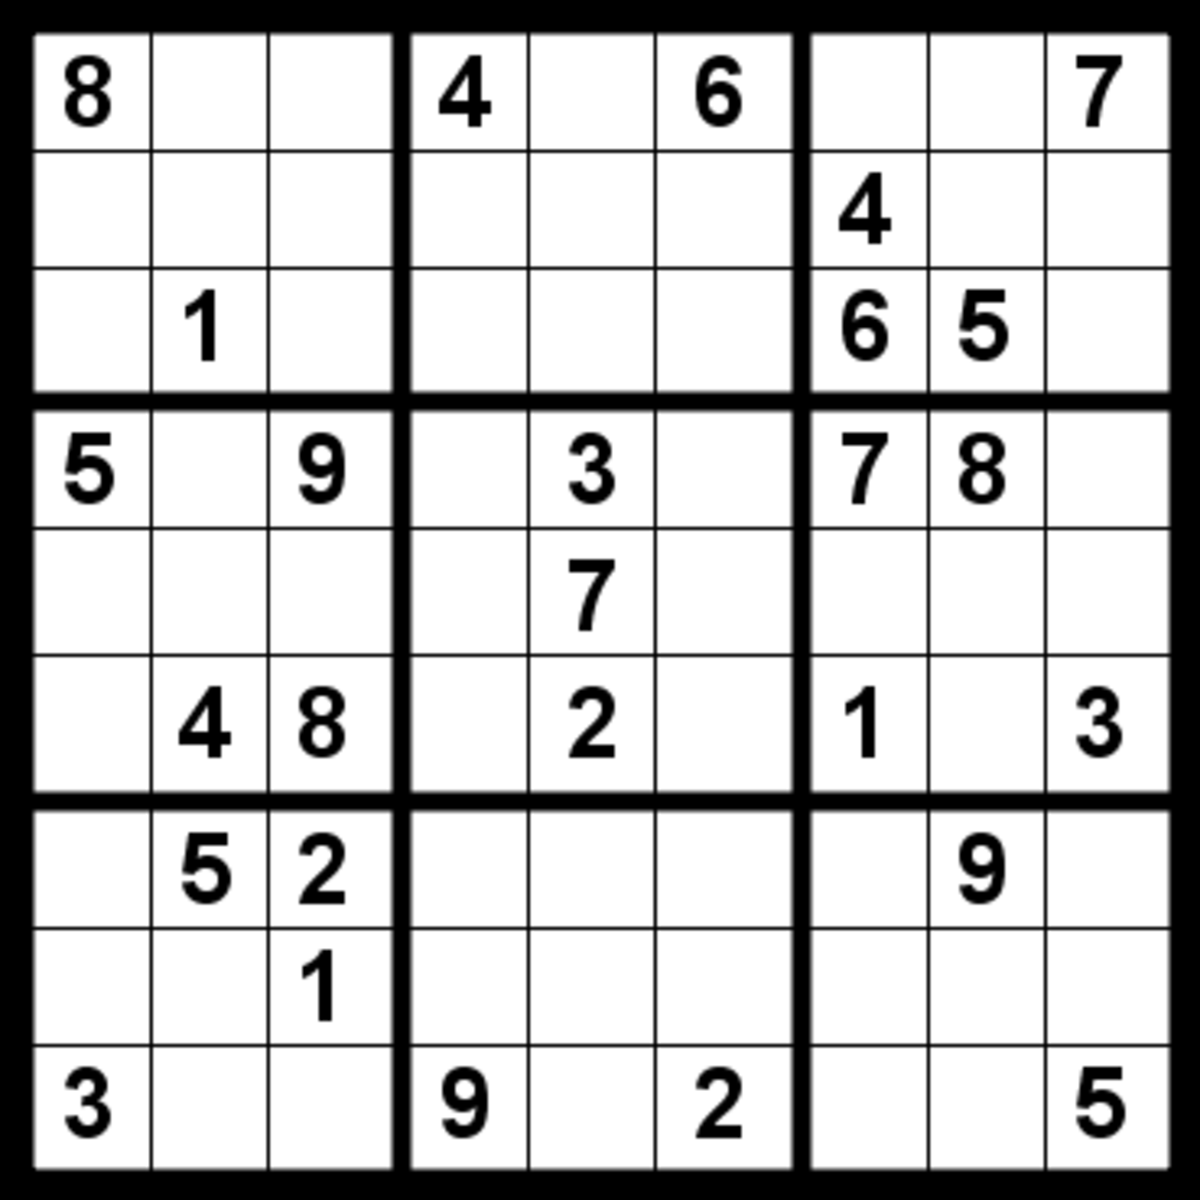 Improve your Sudoku skills (Intermediate)